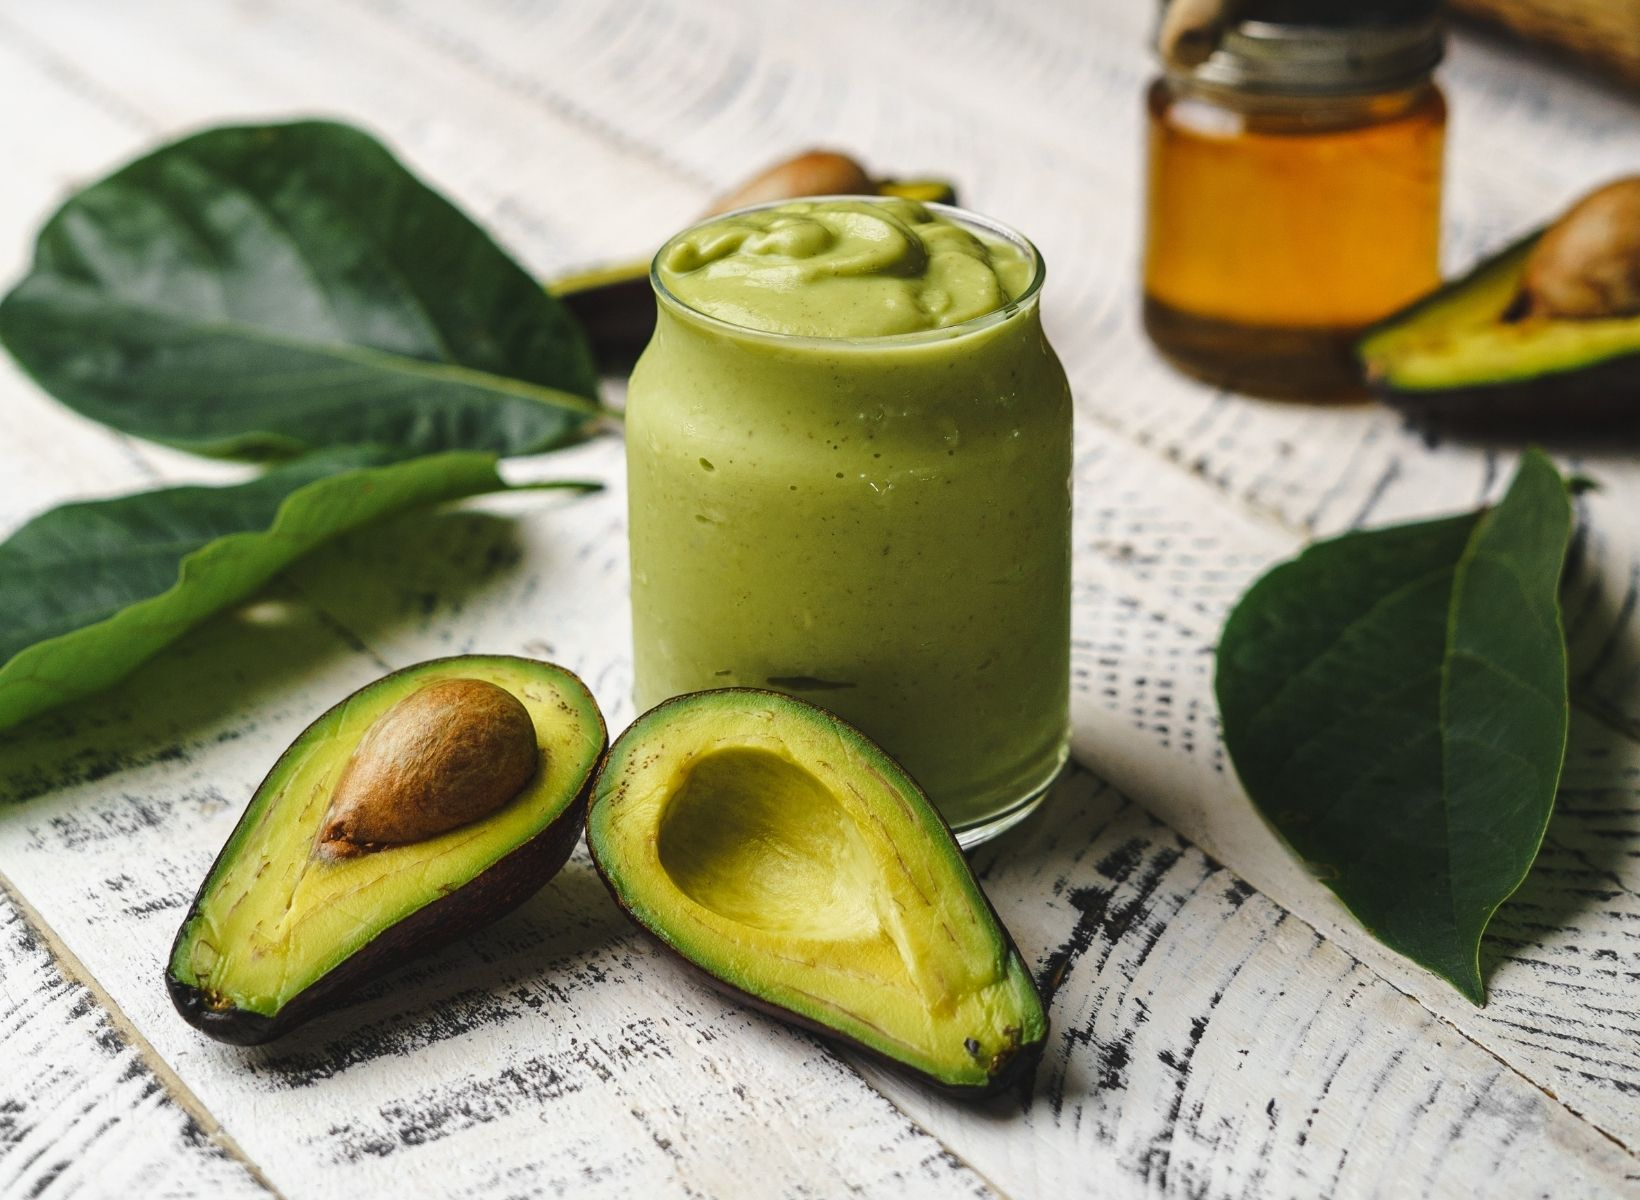 Avocado Cilantro Lime Dressing in a glass jar with green leaves and a ripe avocado cut in half around the jar